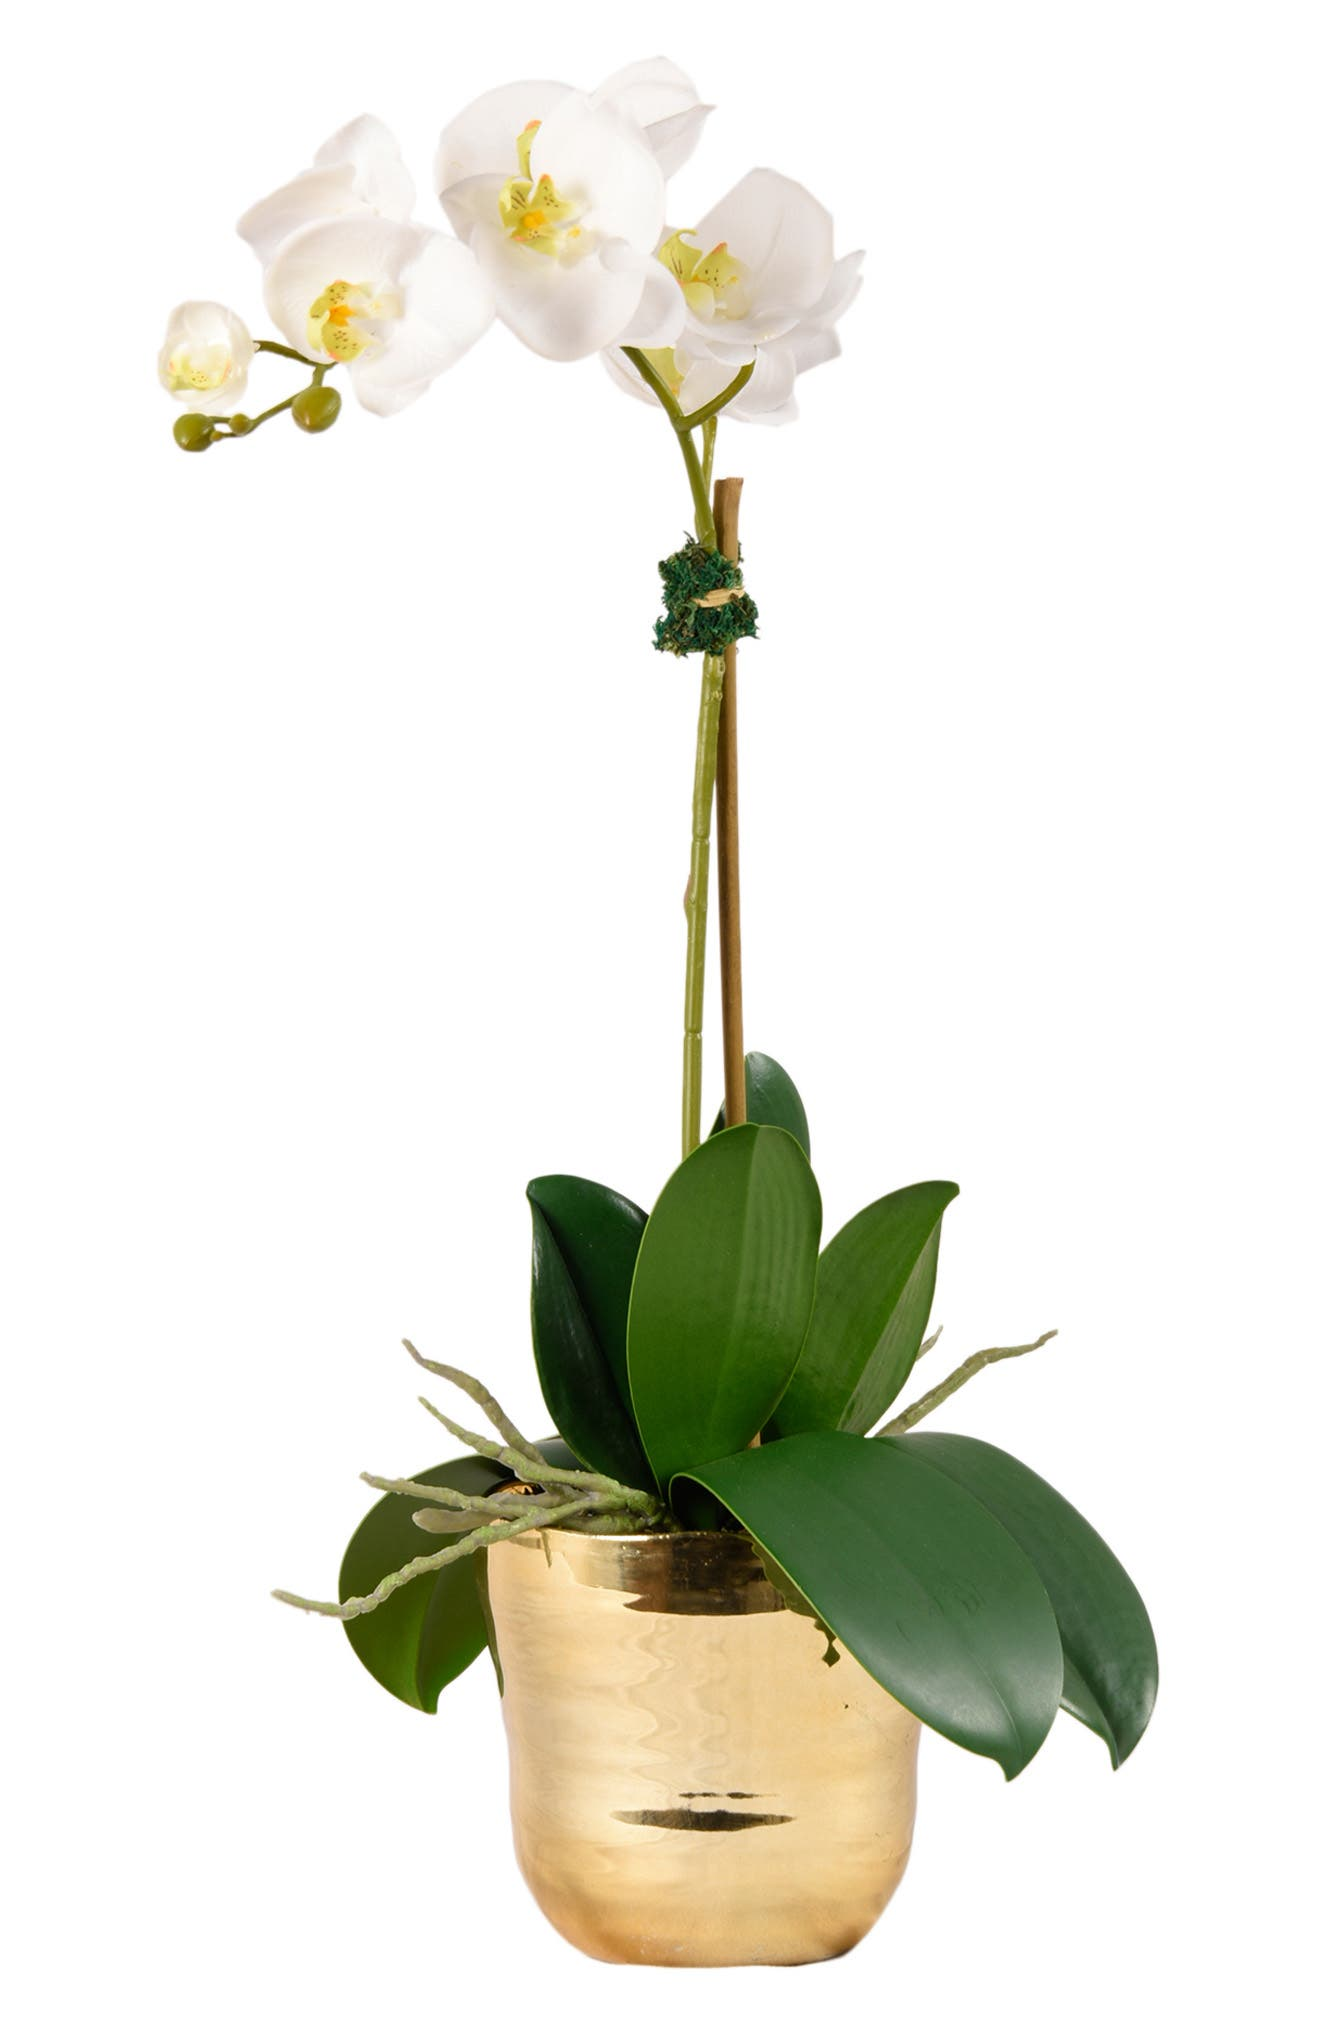 No need for a green thumb when you\\\'ve got this elegant florist-designed faux orchid arcing gracefully above a shining goldtone pot. The design serves as a perfect complement to any decor. Style Name: Bloomr Kingly Orchid Planter Decoration. Style Number: 5889111. Available in stores.